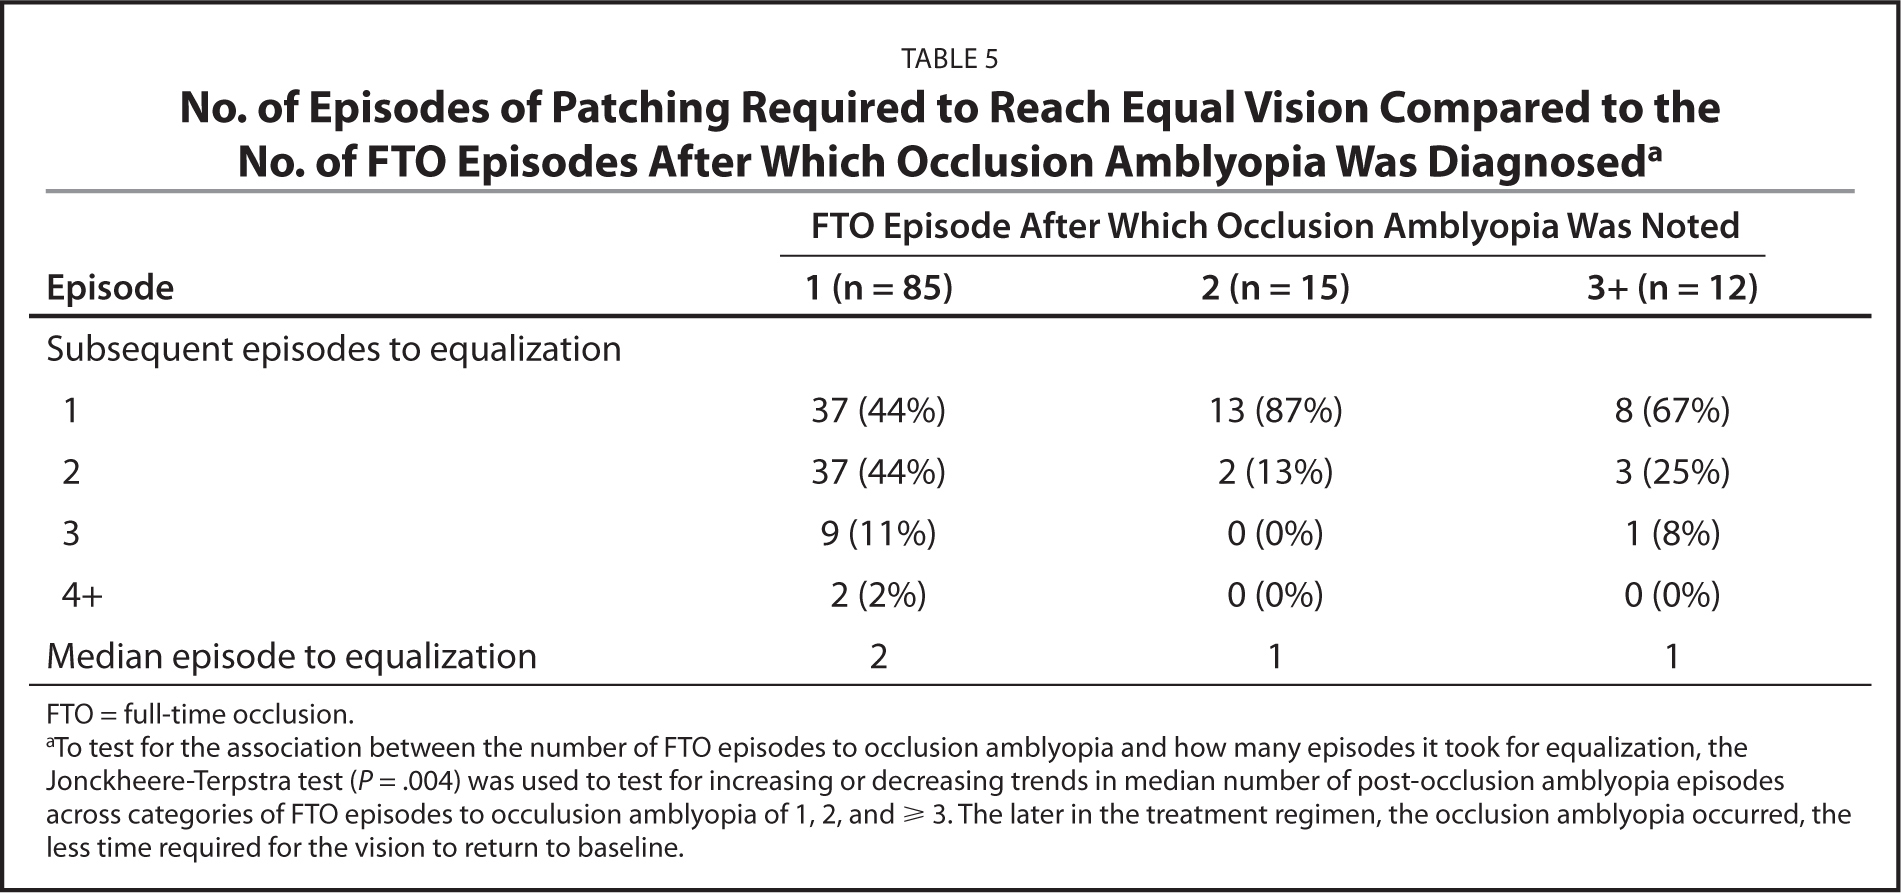 No. of Episodes of Patching Required to Reach Equal Vision Compared to the No. of FTO Episodes After Which Occlusion Amblyopia Was Diagnoseda